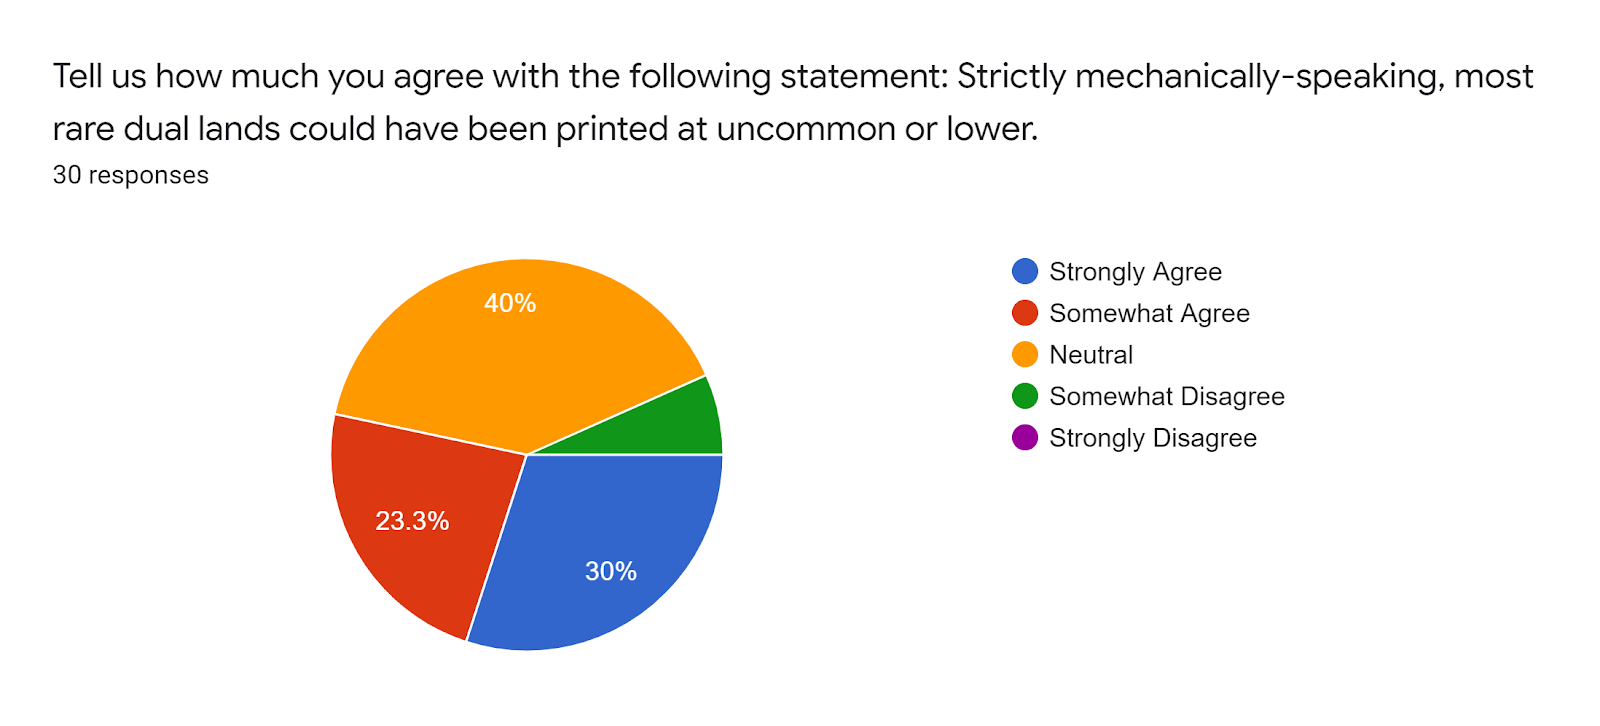 Forms response chart Question title Tell us how much you agree with the following statement Strictly mechanically-speaking most rare dual lands could have been printed at uncommon or lower Number of responses 30 responses